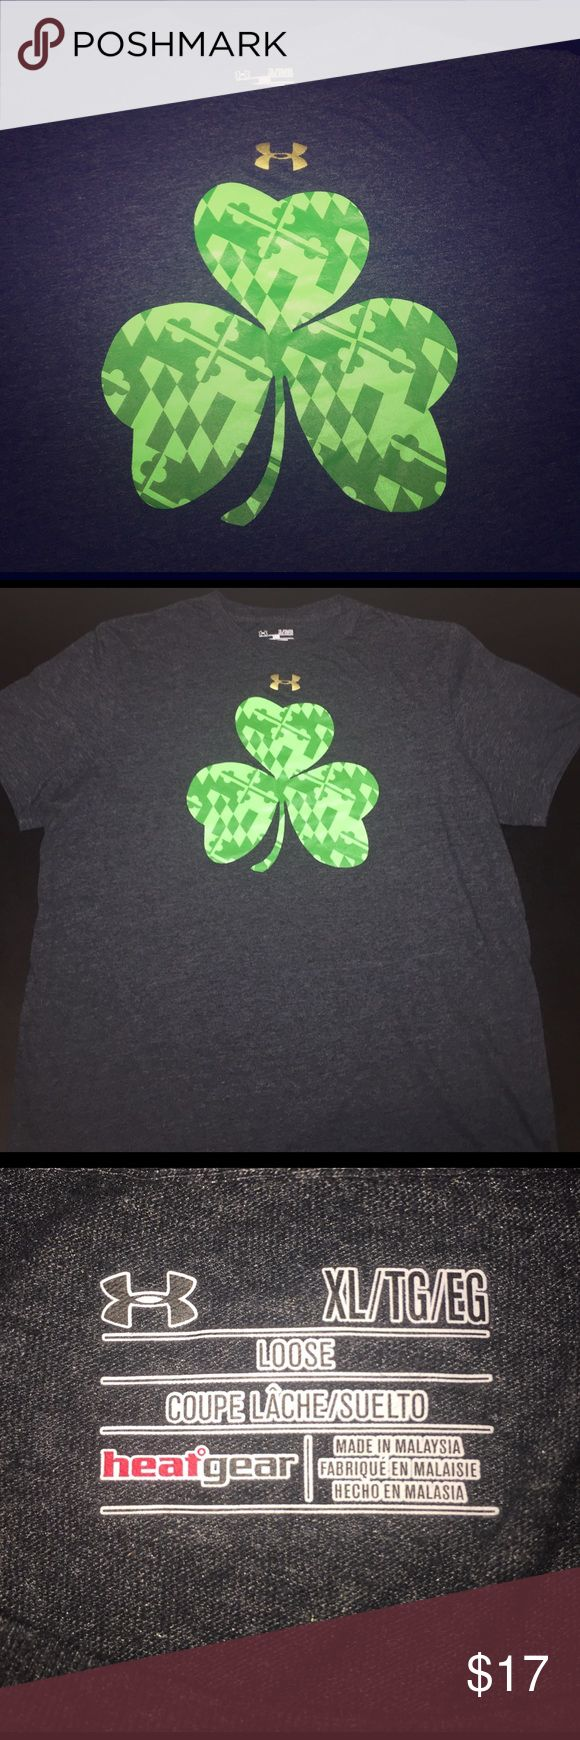 ☘️ Under Armour St. Patrick's Day Loose T-Shirt ☘️ For sale is a size XL, Men's Under Armour St. Patrick's Day Short Sleeve T Shirt. Item has been worn and washed but remains in great condition. Great for celebrating St. Patrick's Day both at the gym or out for festivities! Under Armour Shirts Tees - Short Sleeve